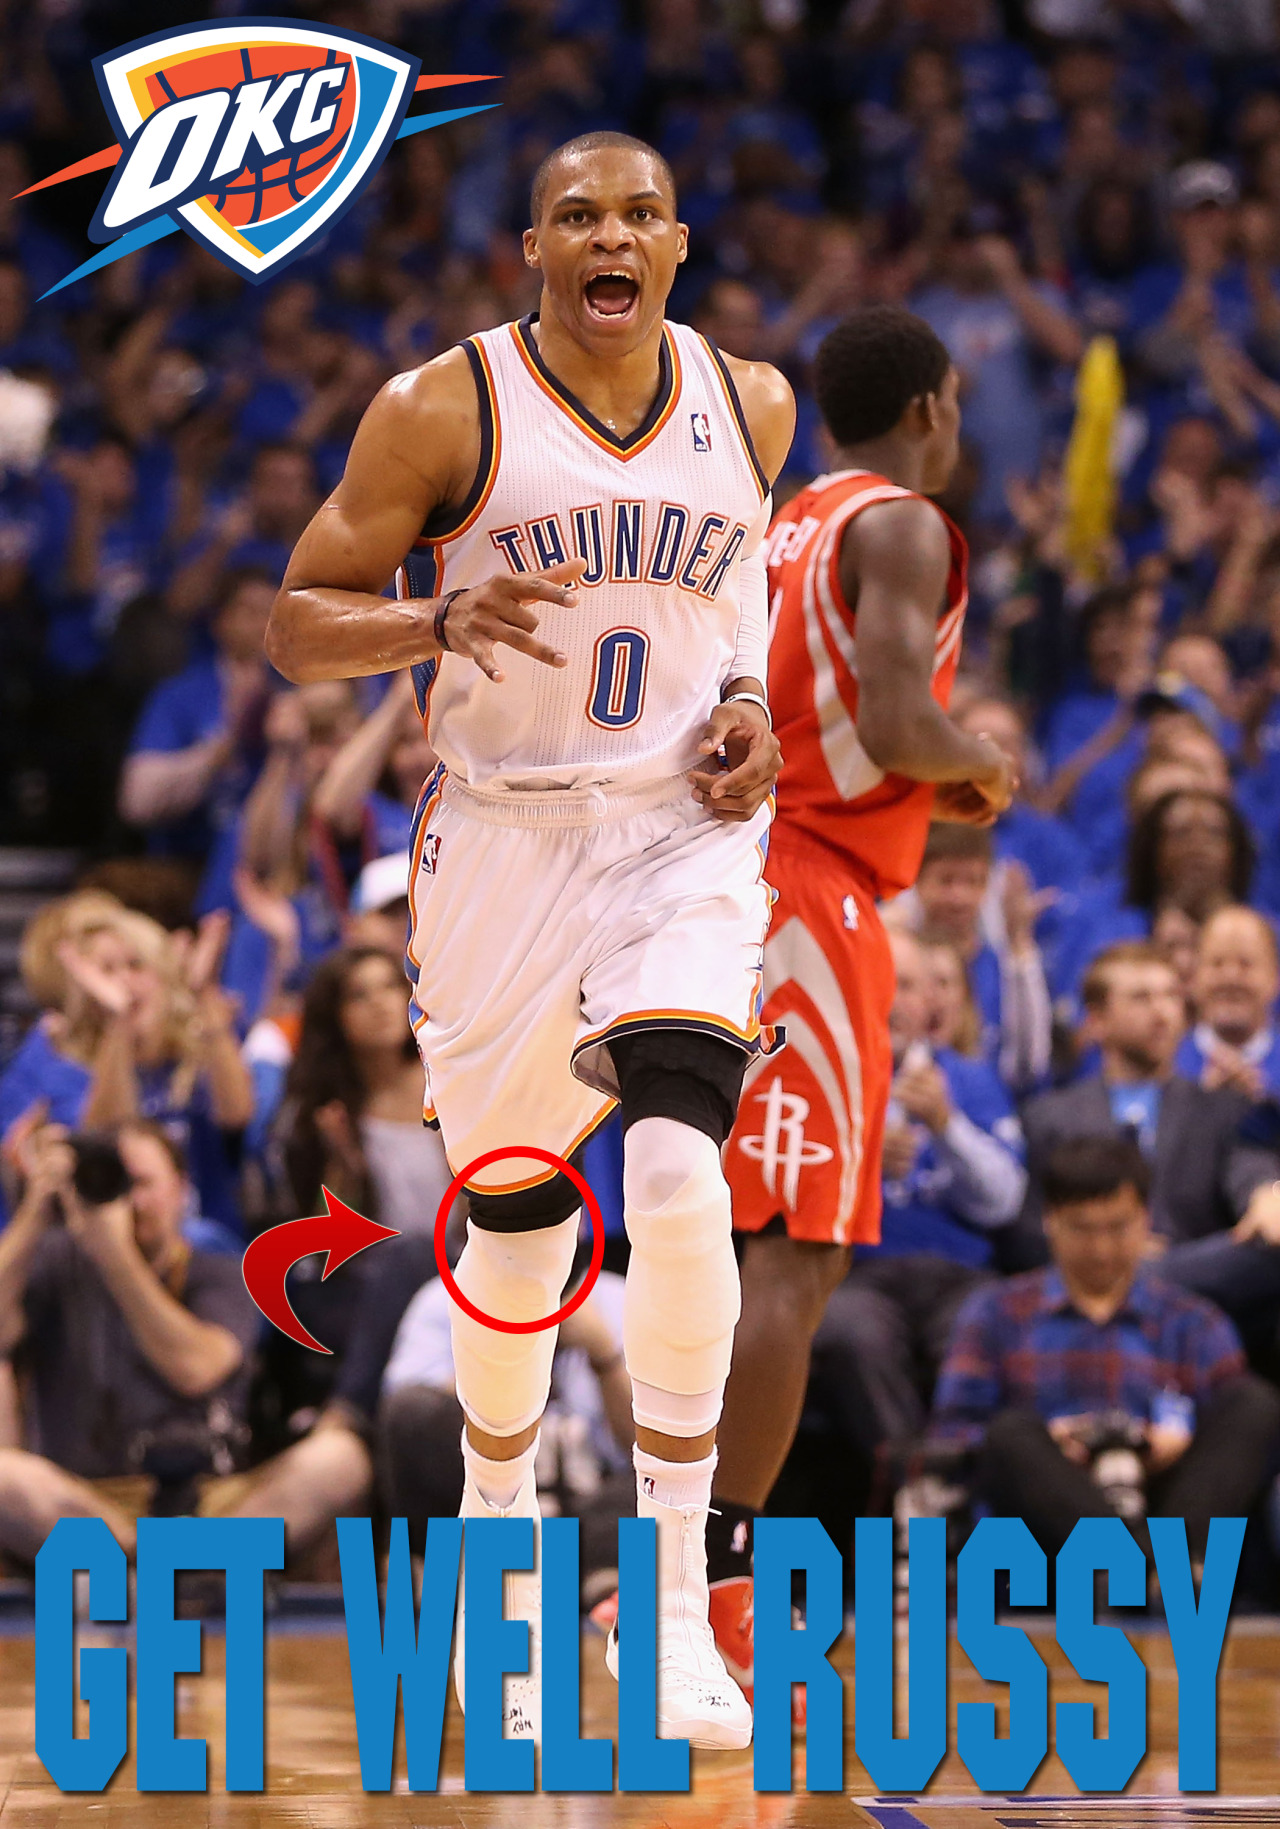 BREAKING: Russell Westbrook will be out indefinitely after having surgery.